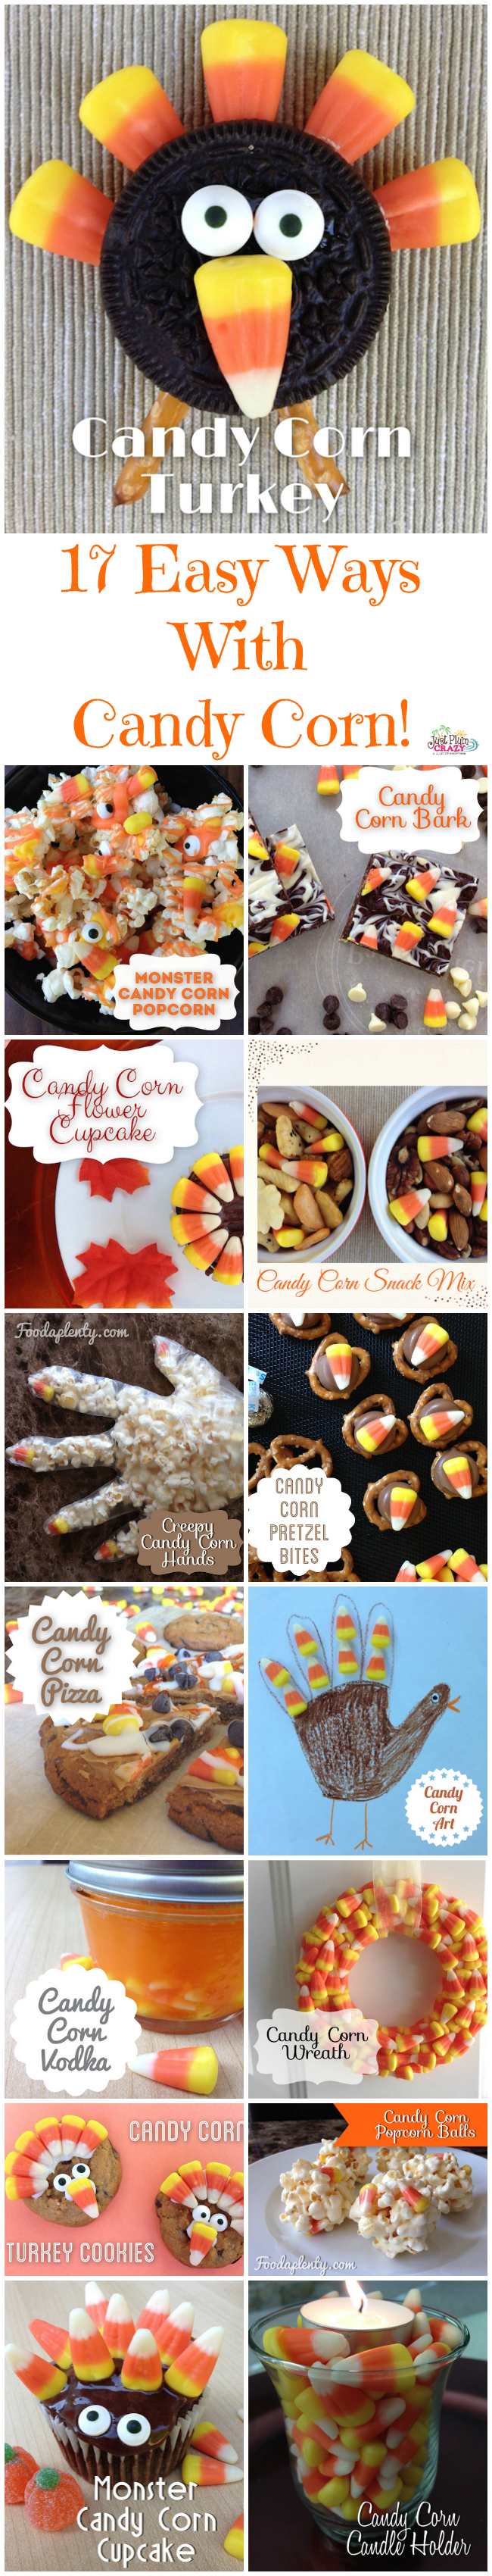 Candy corn has been around for a long time, but if Pinterest is any indication, its popularity has been surging. 25 million pounds are sold each year.